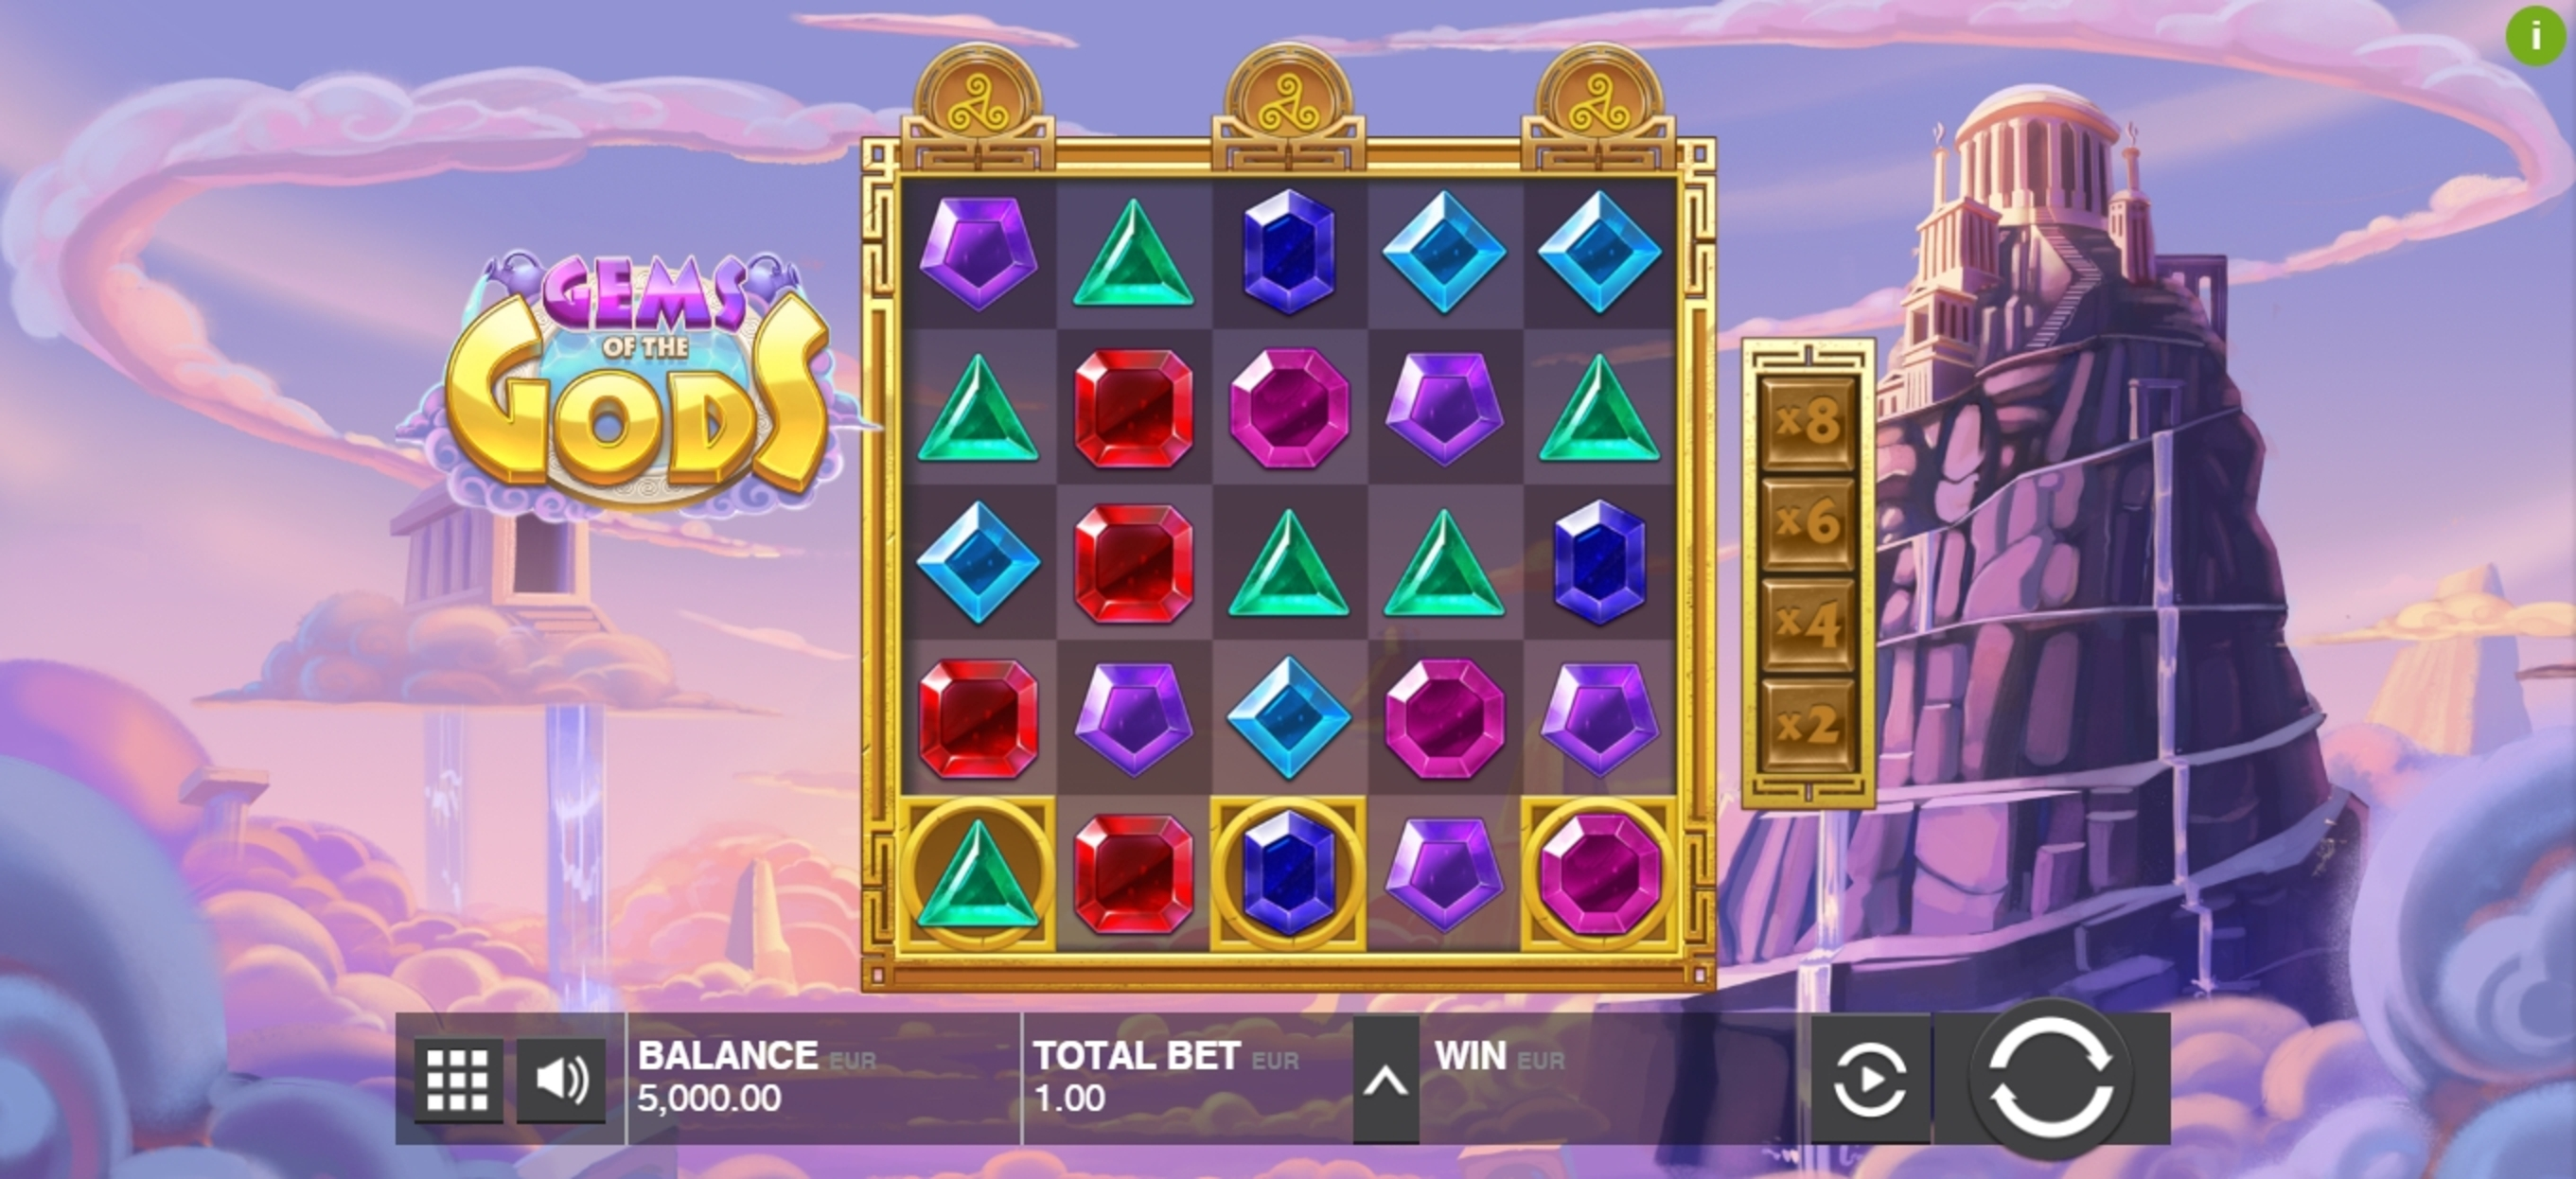 Reels in Gems of the Gods Slot Game by Push Gaming